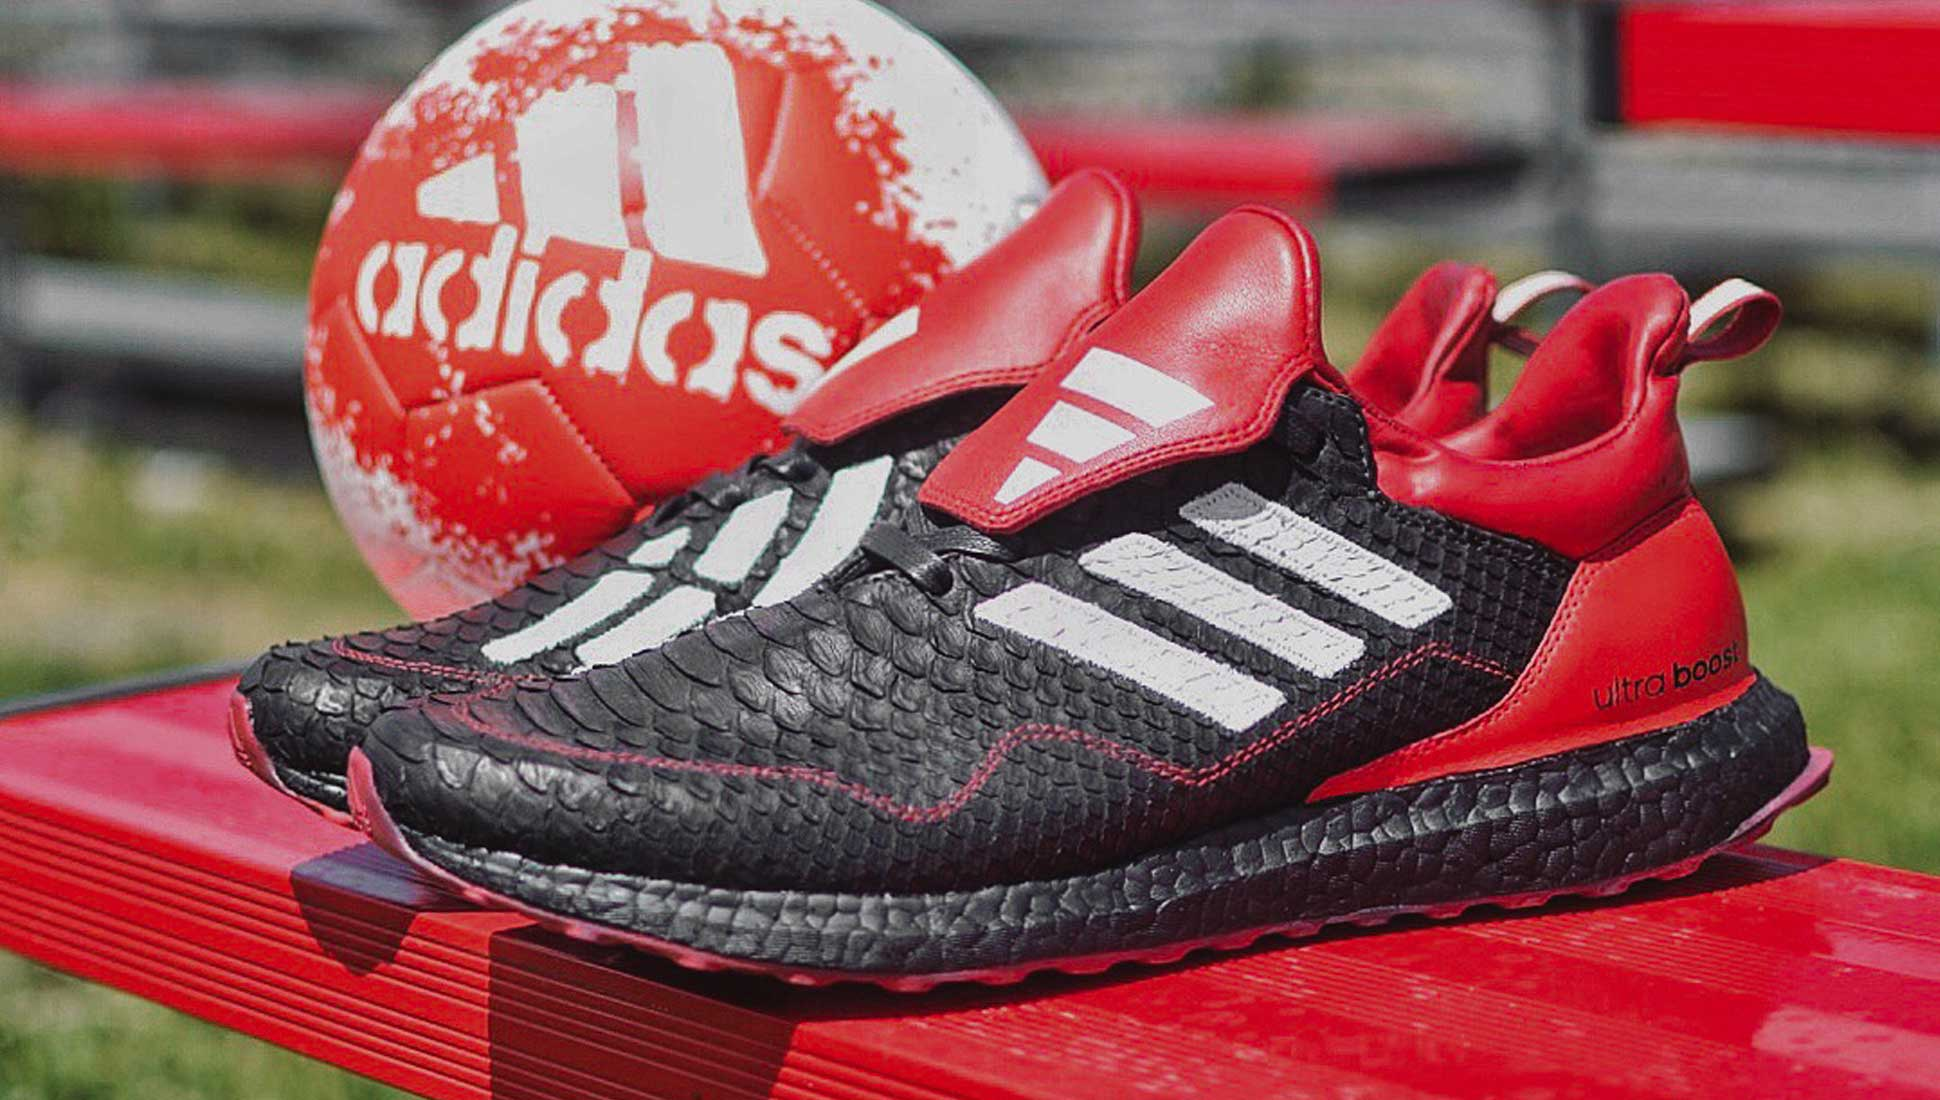 adidas x Jack The Ripper Custom Predator 18+ UltraBoost - SoccerBible. b75c69e504e6